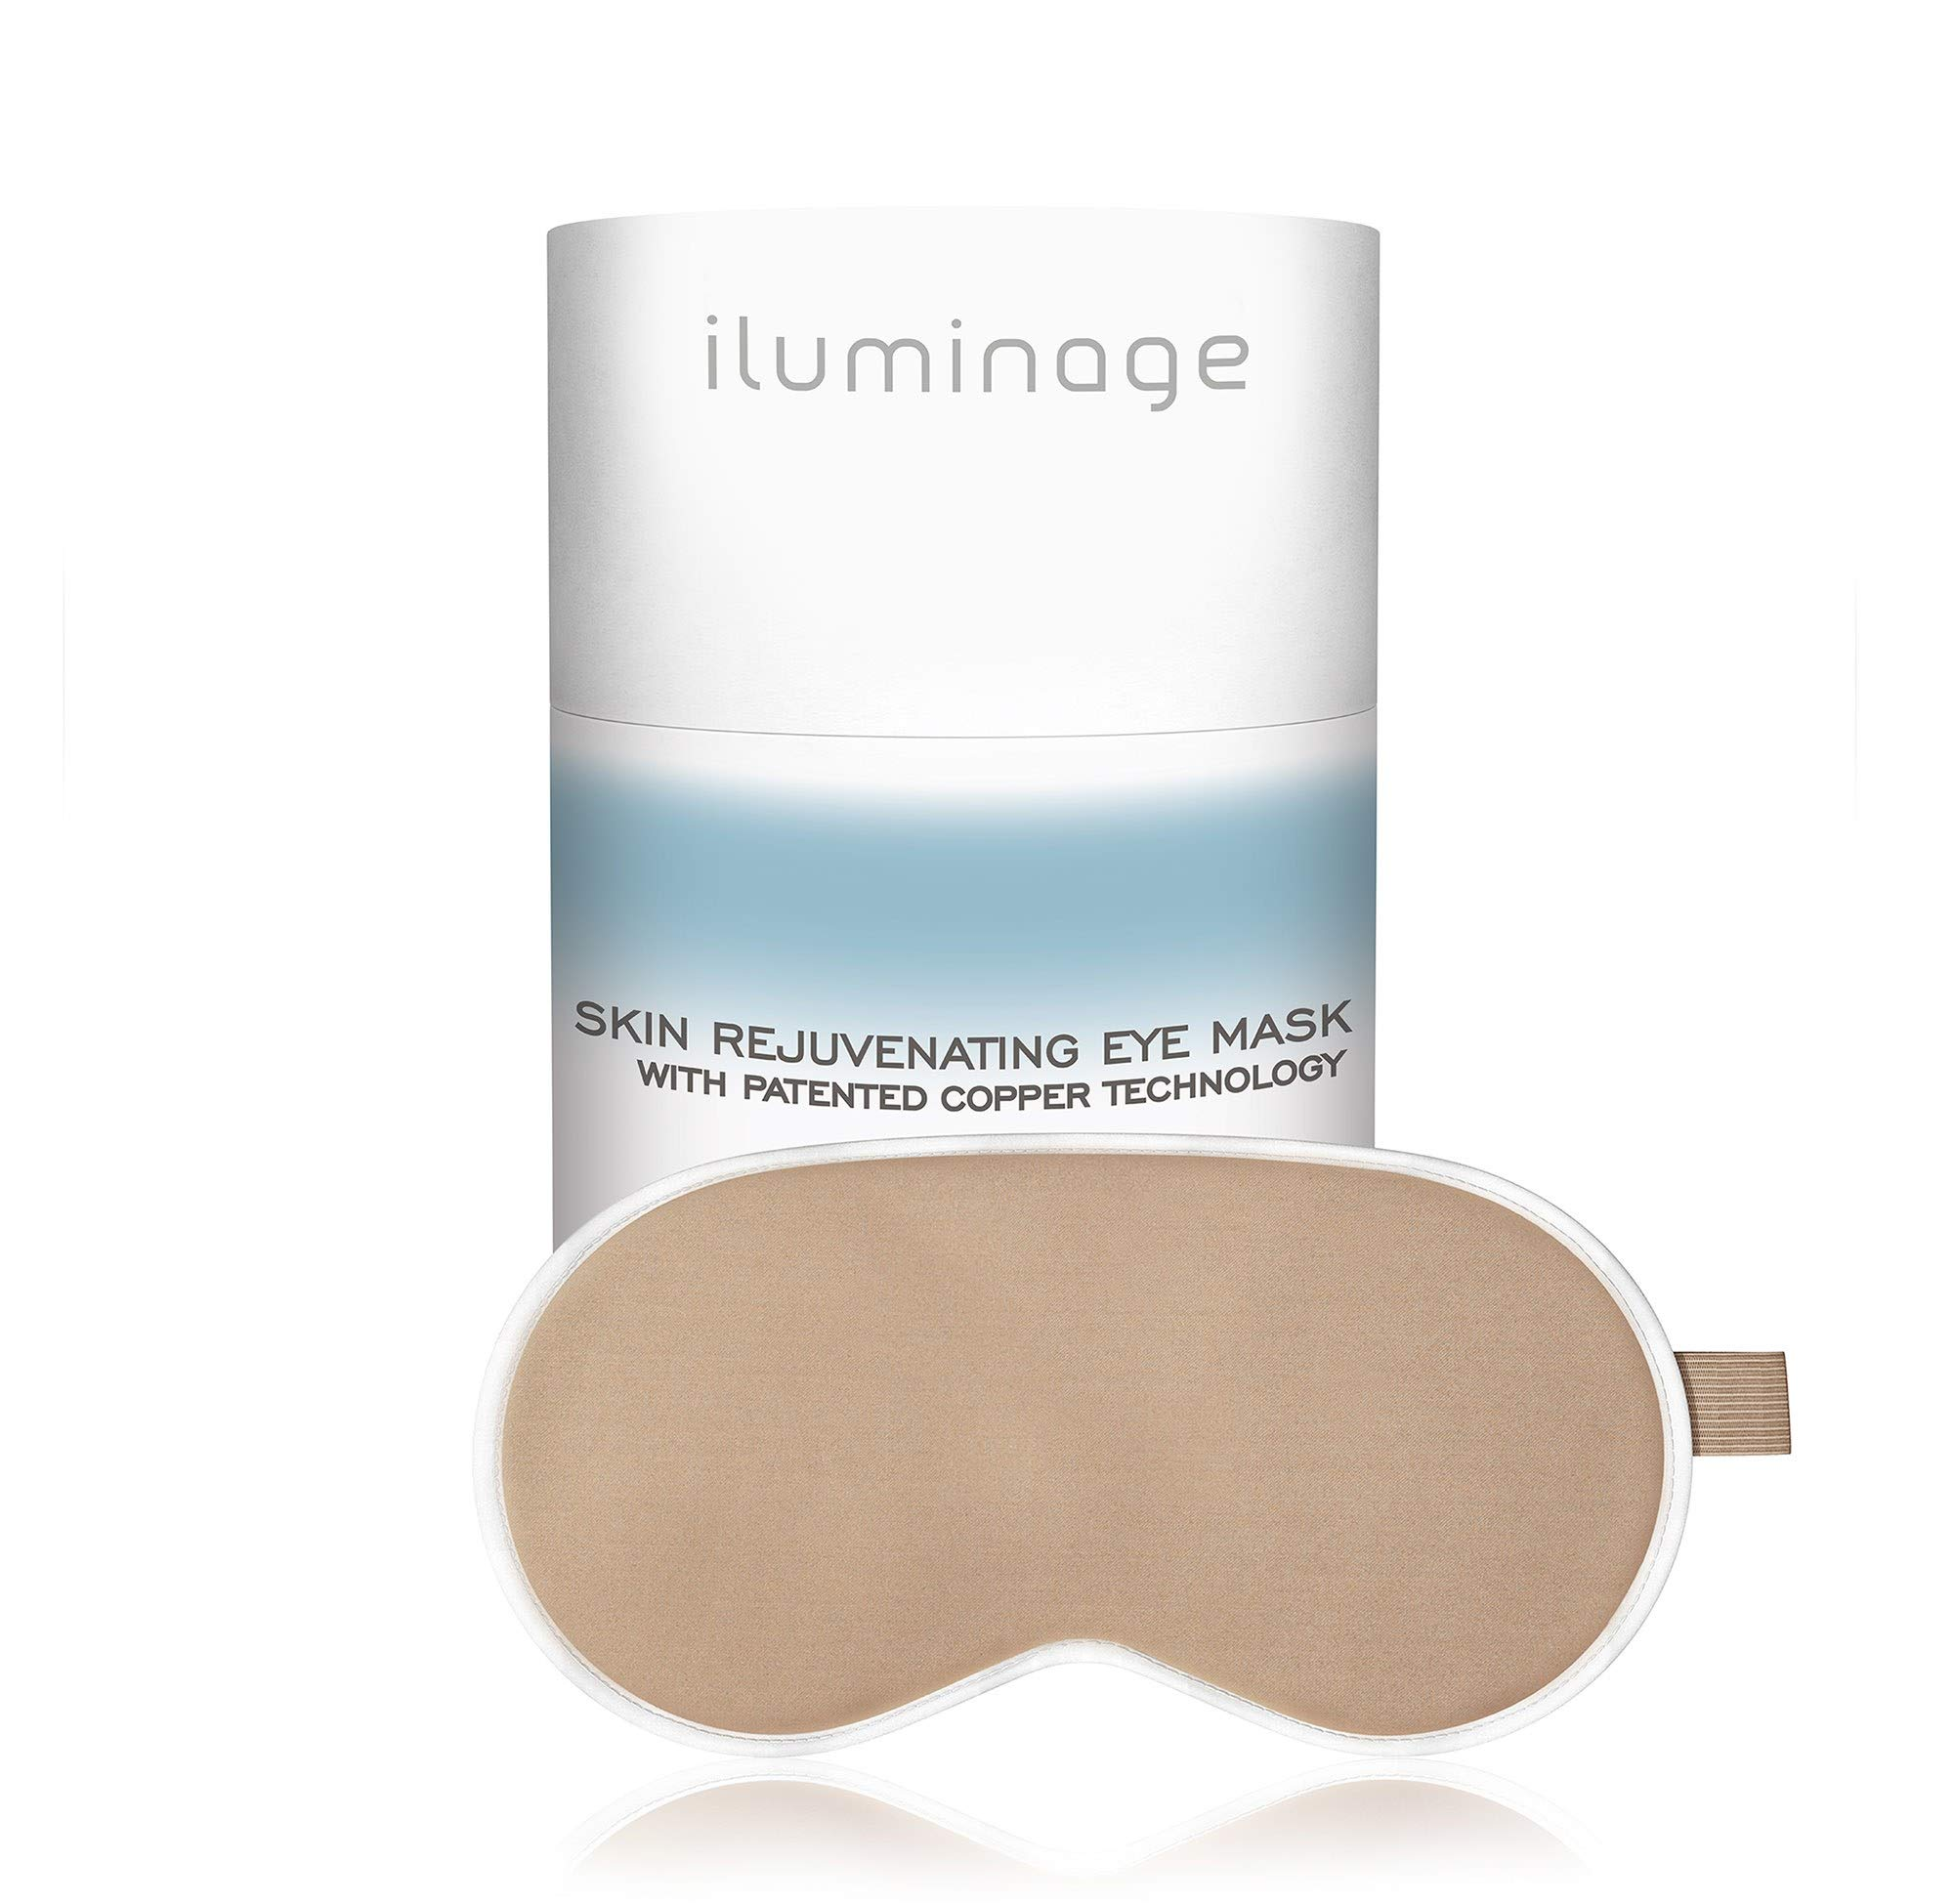 Iluminage. Skin Rejuvenating Eye Mask for Fine Lines Reduction with Anti-Aging Copper Technology